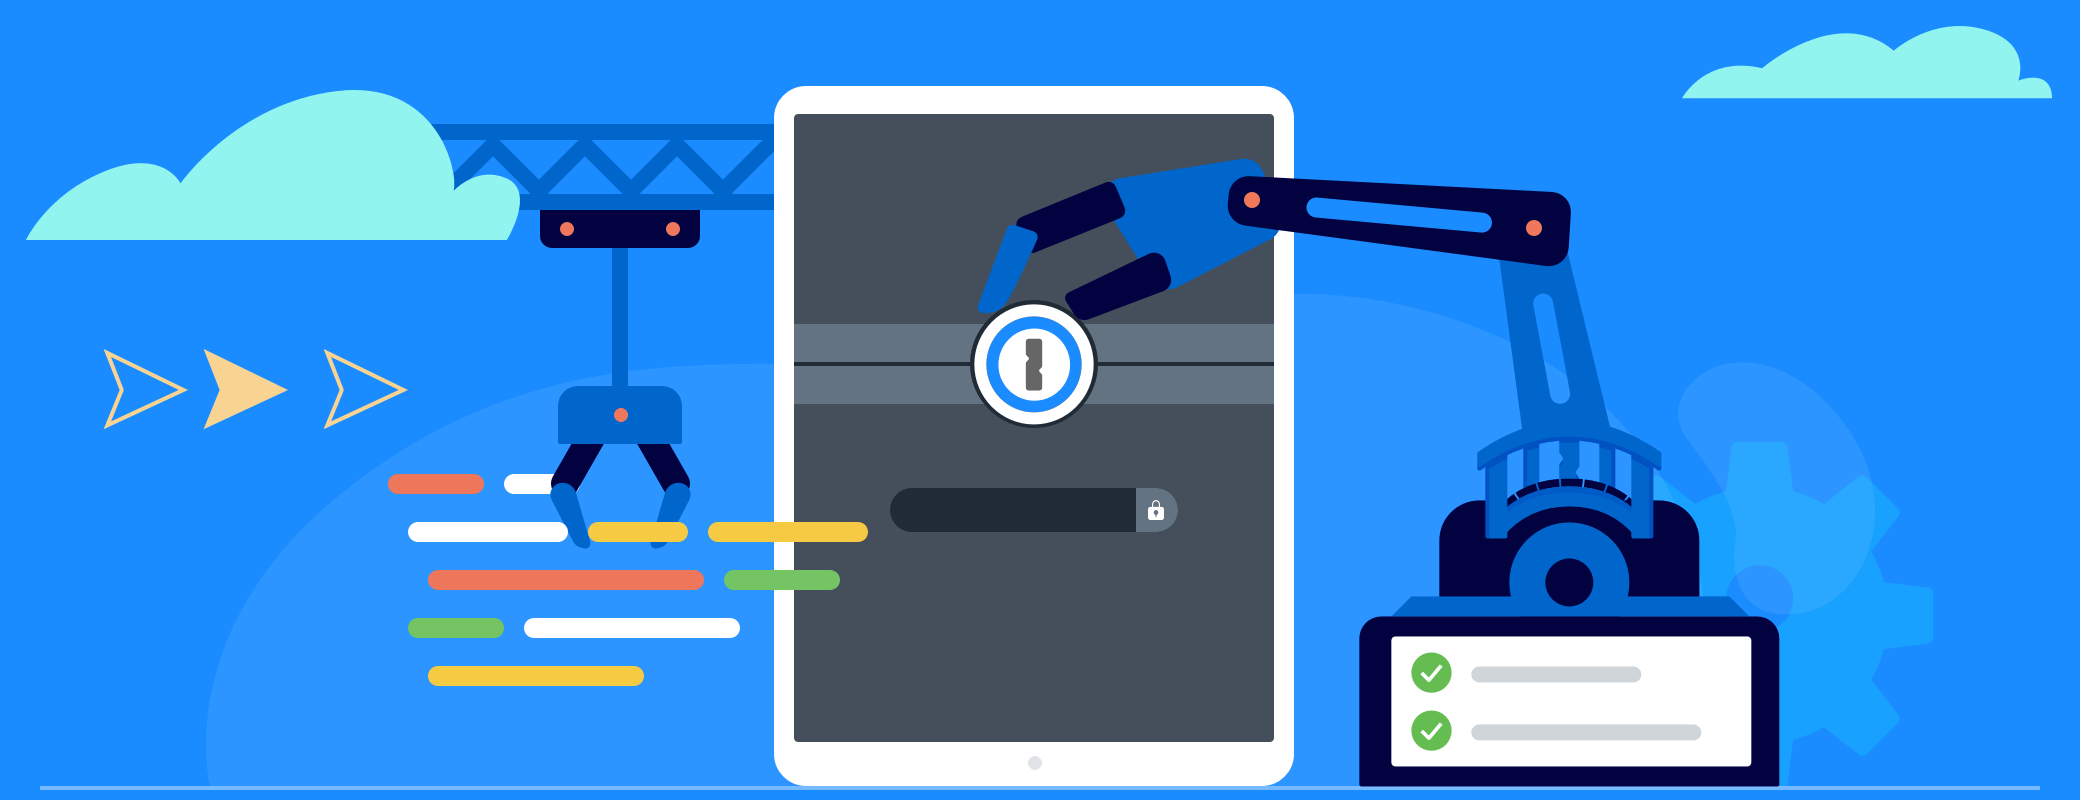 Use the SCIM bridge and the command-line tool to automate 1Password Business